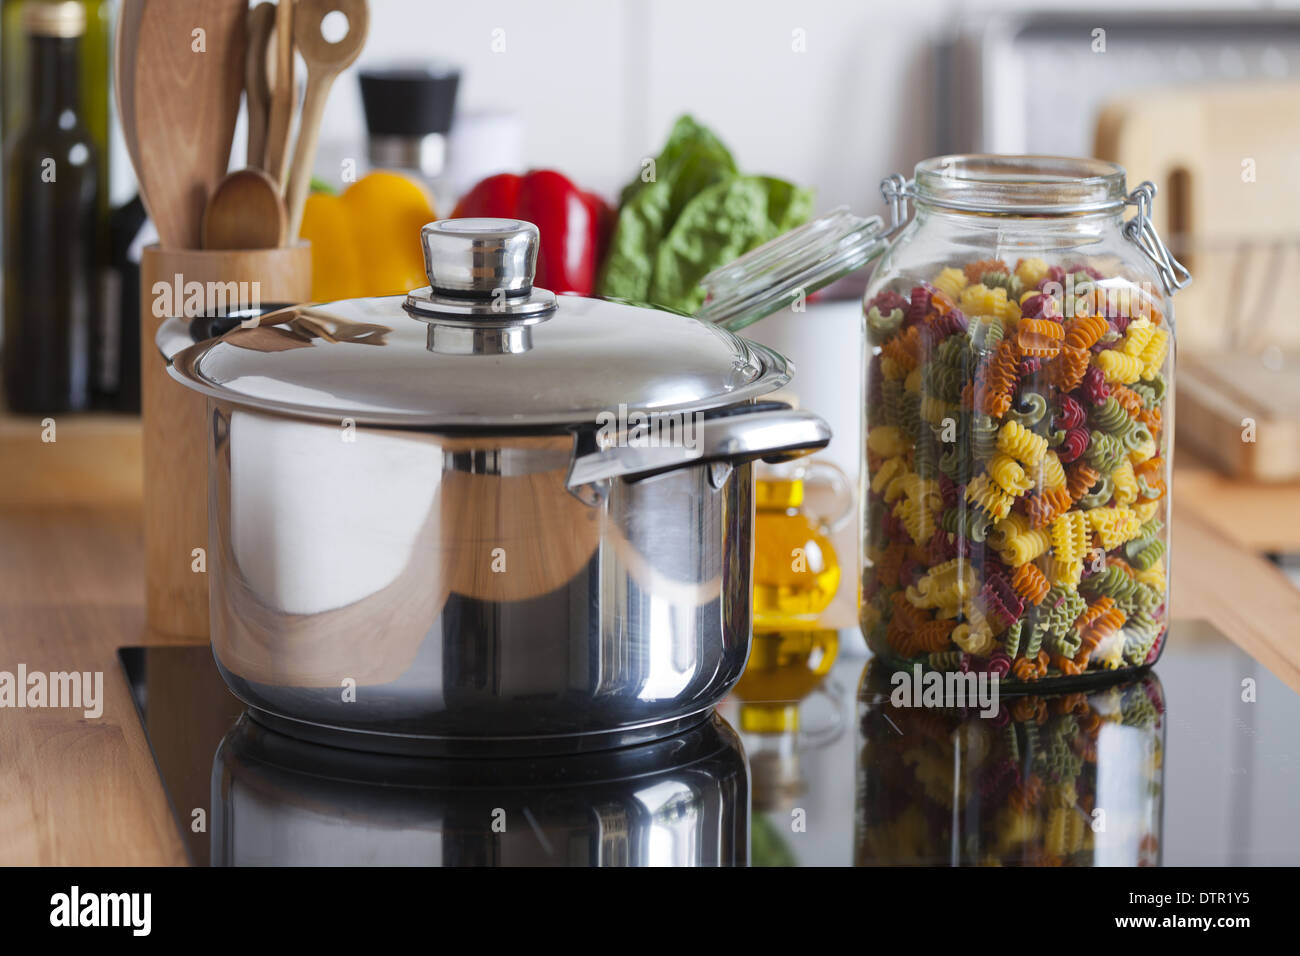 Cooking Pot and a Storage Jar with colorful Pasta with Copy Space in the upper and lower Area of the Image - Stock Image